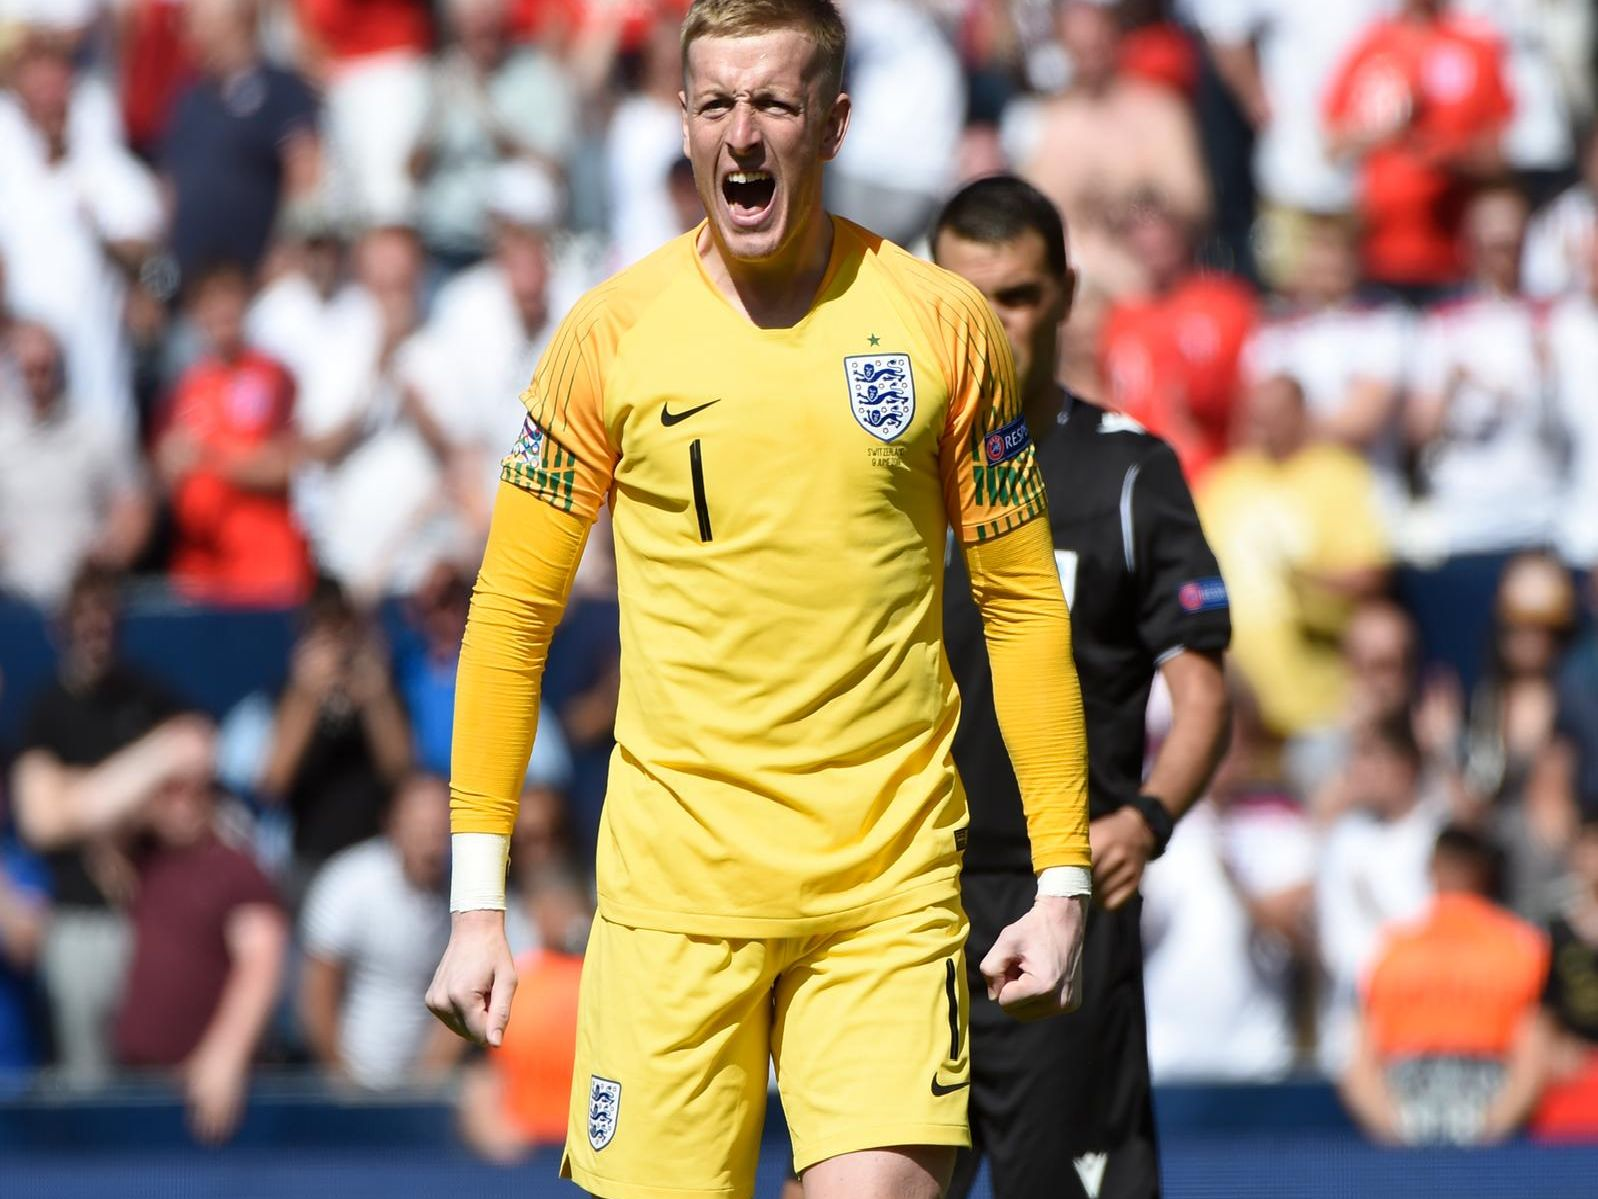 England's goalkeeper Jordan Pickford celebrates a goal during the penalty shootout during the UEFA Nations League third place football match between England and Switzerland